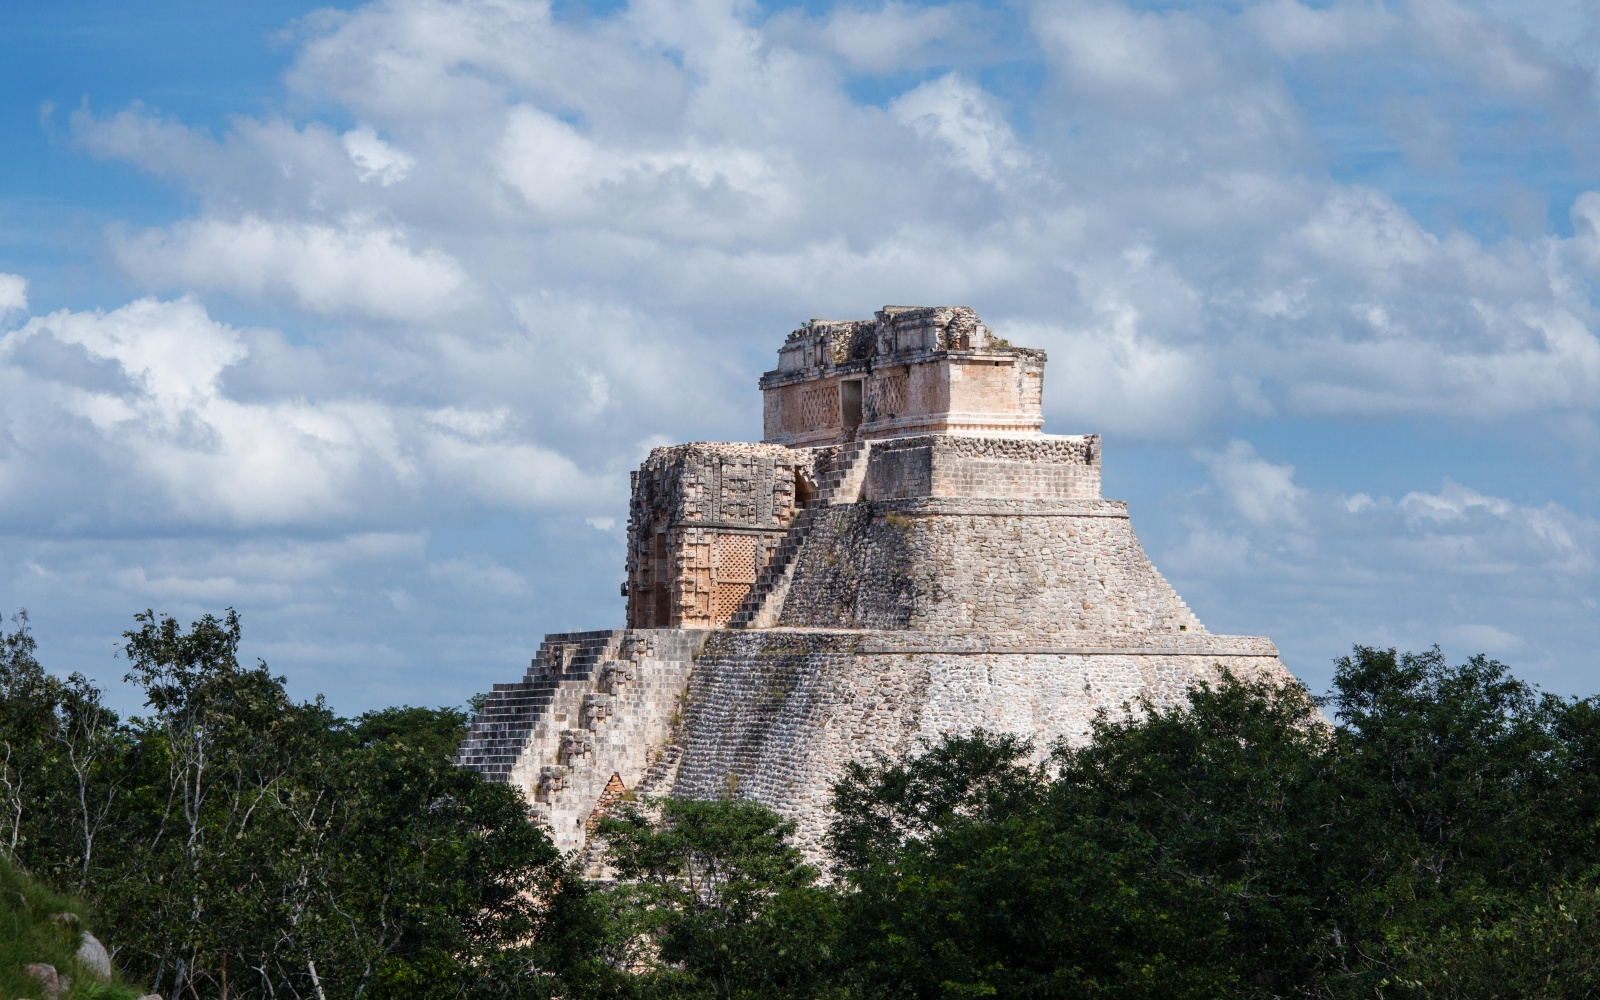 Uxmal Pyramid in Mexico